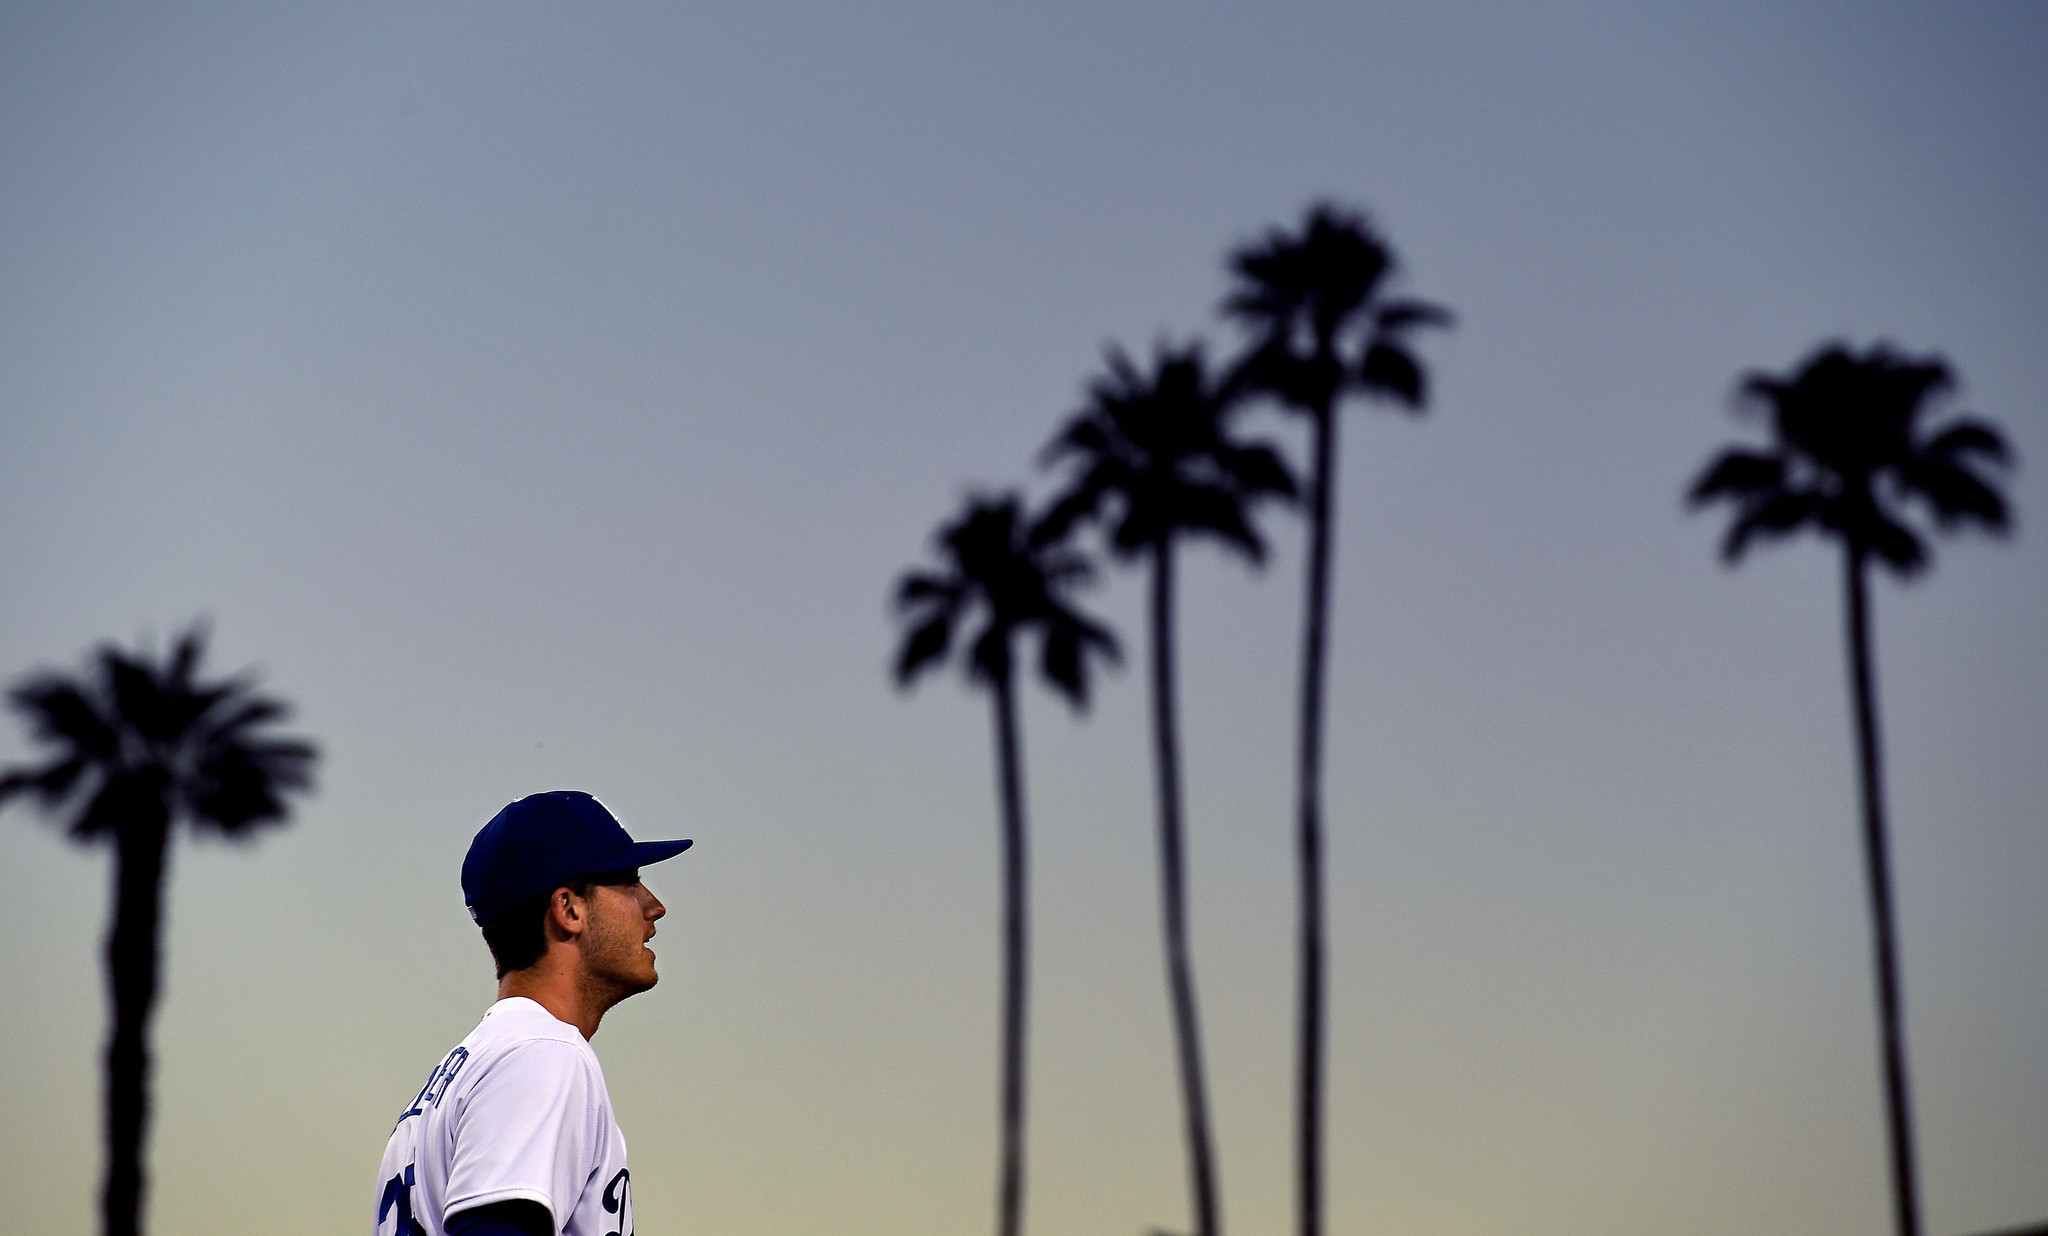 Dodgers rookie Cody Bellinger is flanked by palm trees during a game at Dodger Stadium.